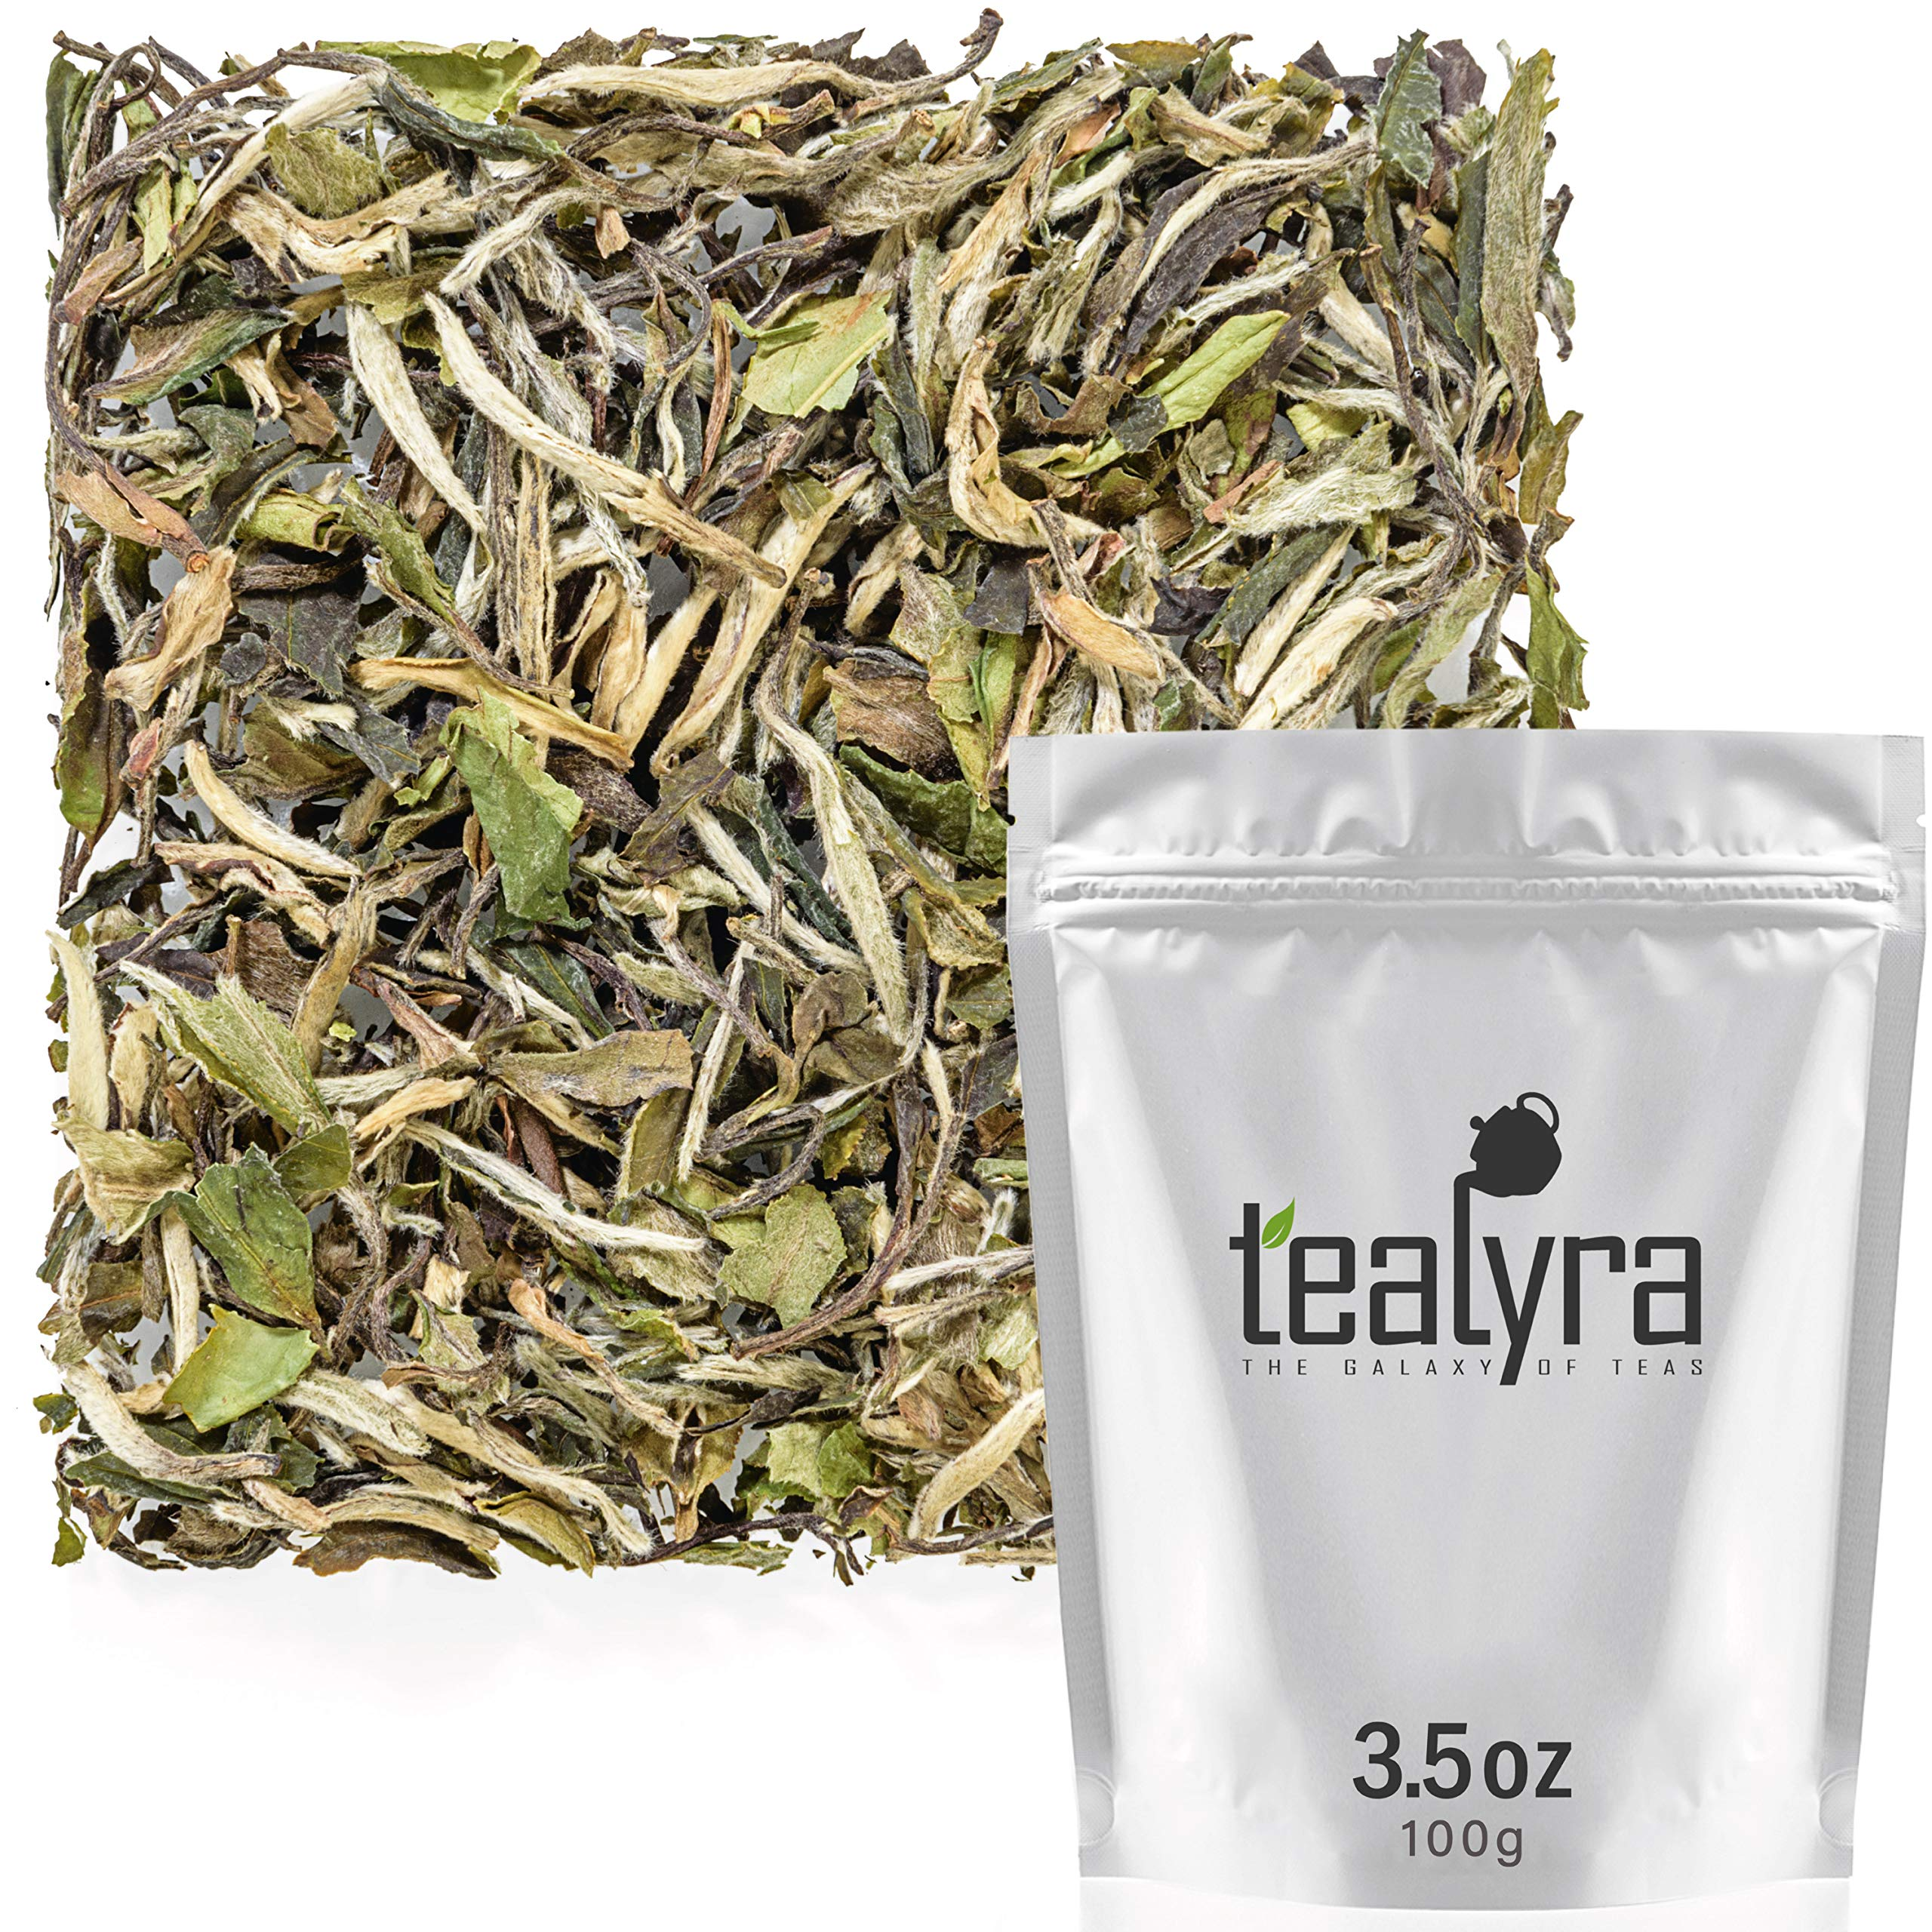 Tealyra - White Peony - Bai Mu Tan White Loose Leaf tea - Premium Chinese White Tea - Organically Grown - Caffeine Level Low - 100g (3.5-ounce) by Tealyra